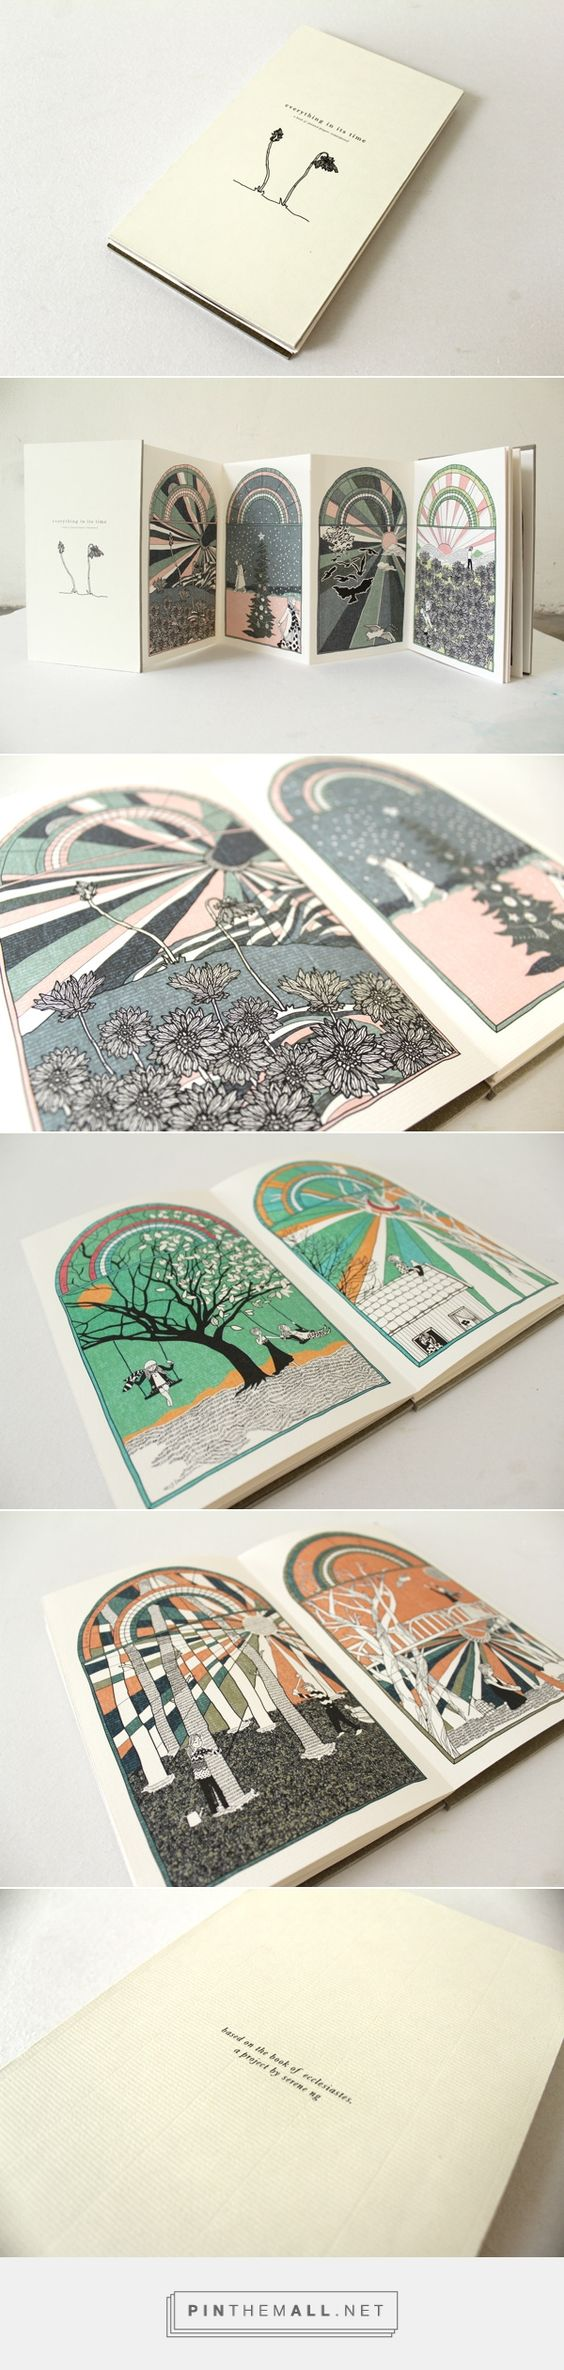 Everything in its Time: Painted Prayers Reinterpreted by Serene Ng.: